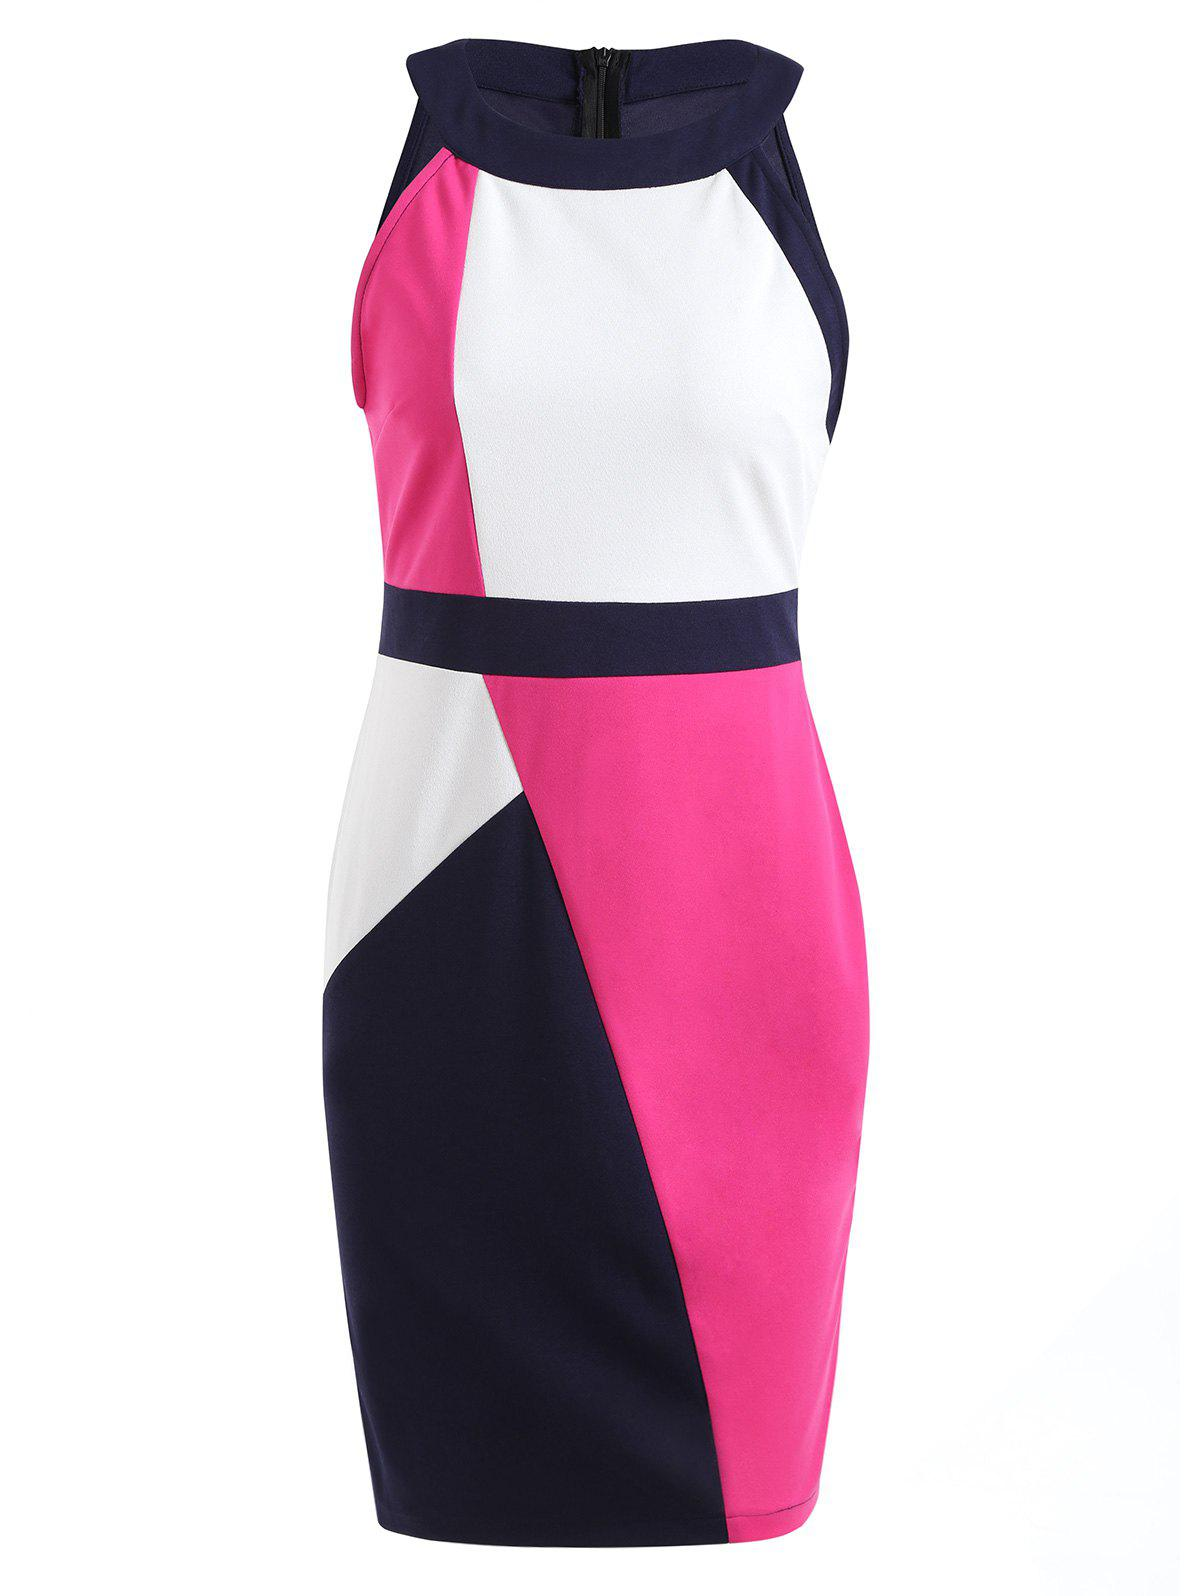 Color Block Sleeveless Sheath Dress - multicolor A 2XL